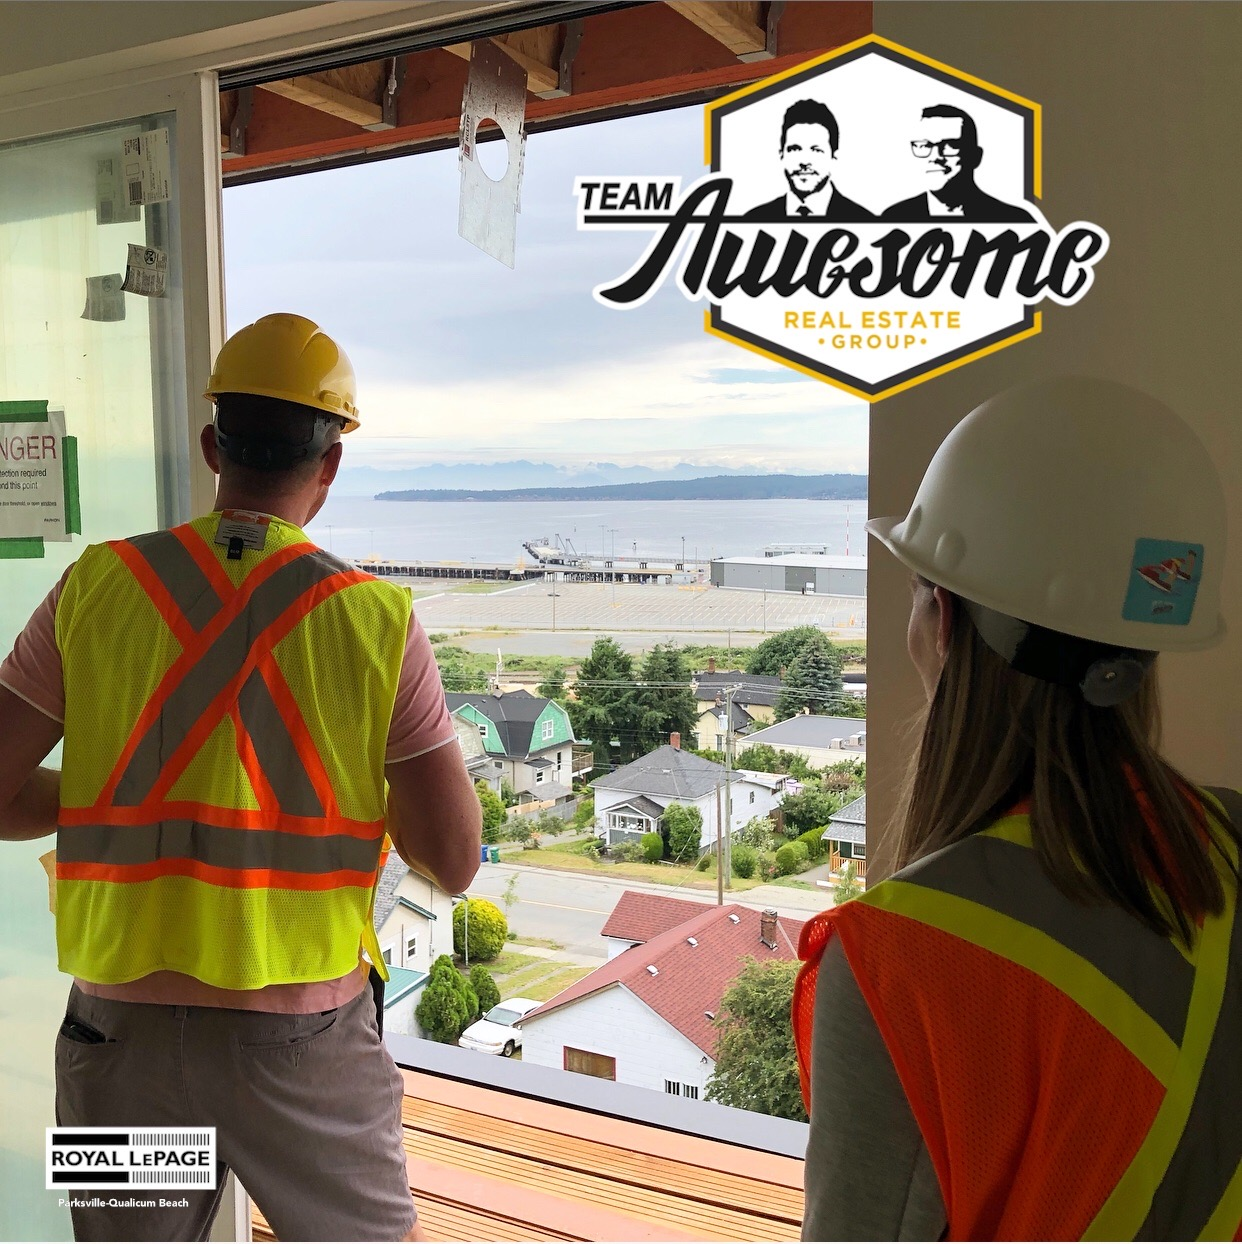 Condo, condominium, ladysmith, crofton, nanaimo, real estate, for sale, by owner, parksville, qualicum beach, lantzville, team awesome